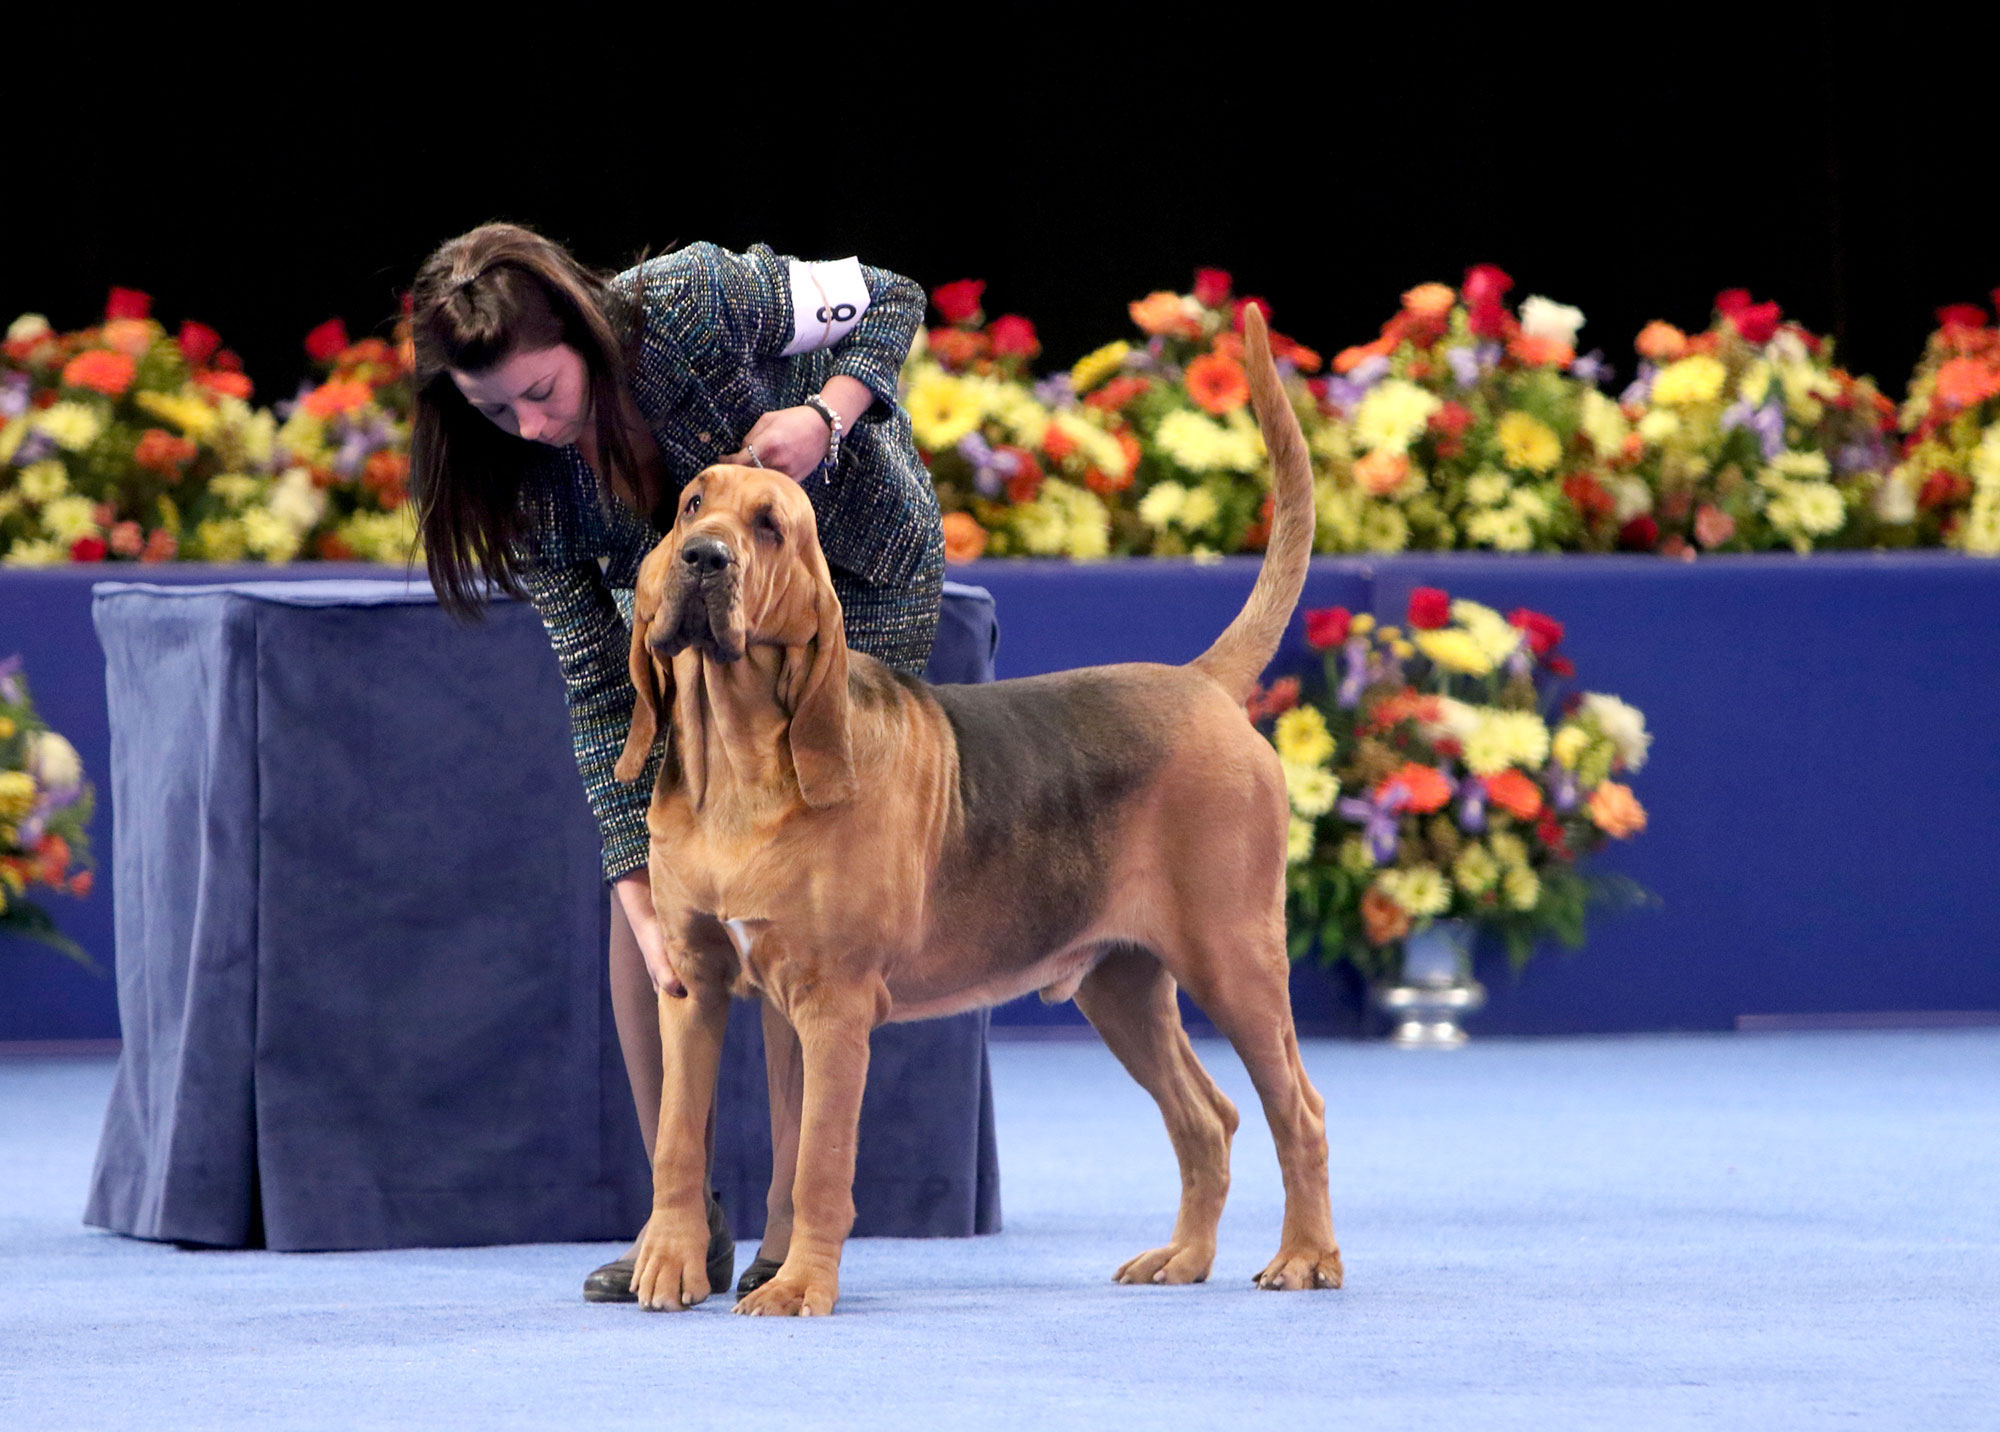 The National Dog Show Presented by Purina - Season 13